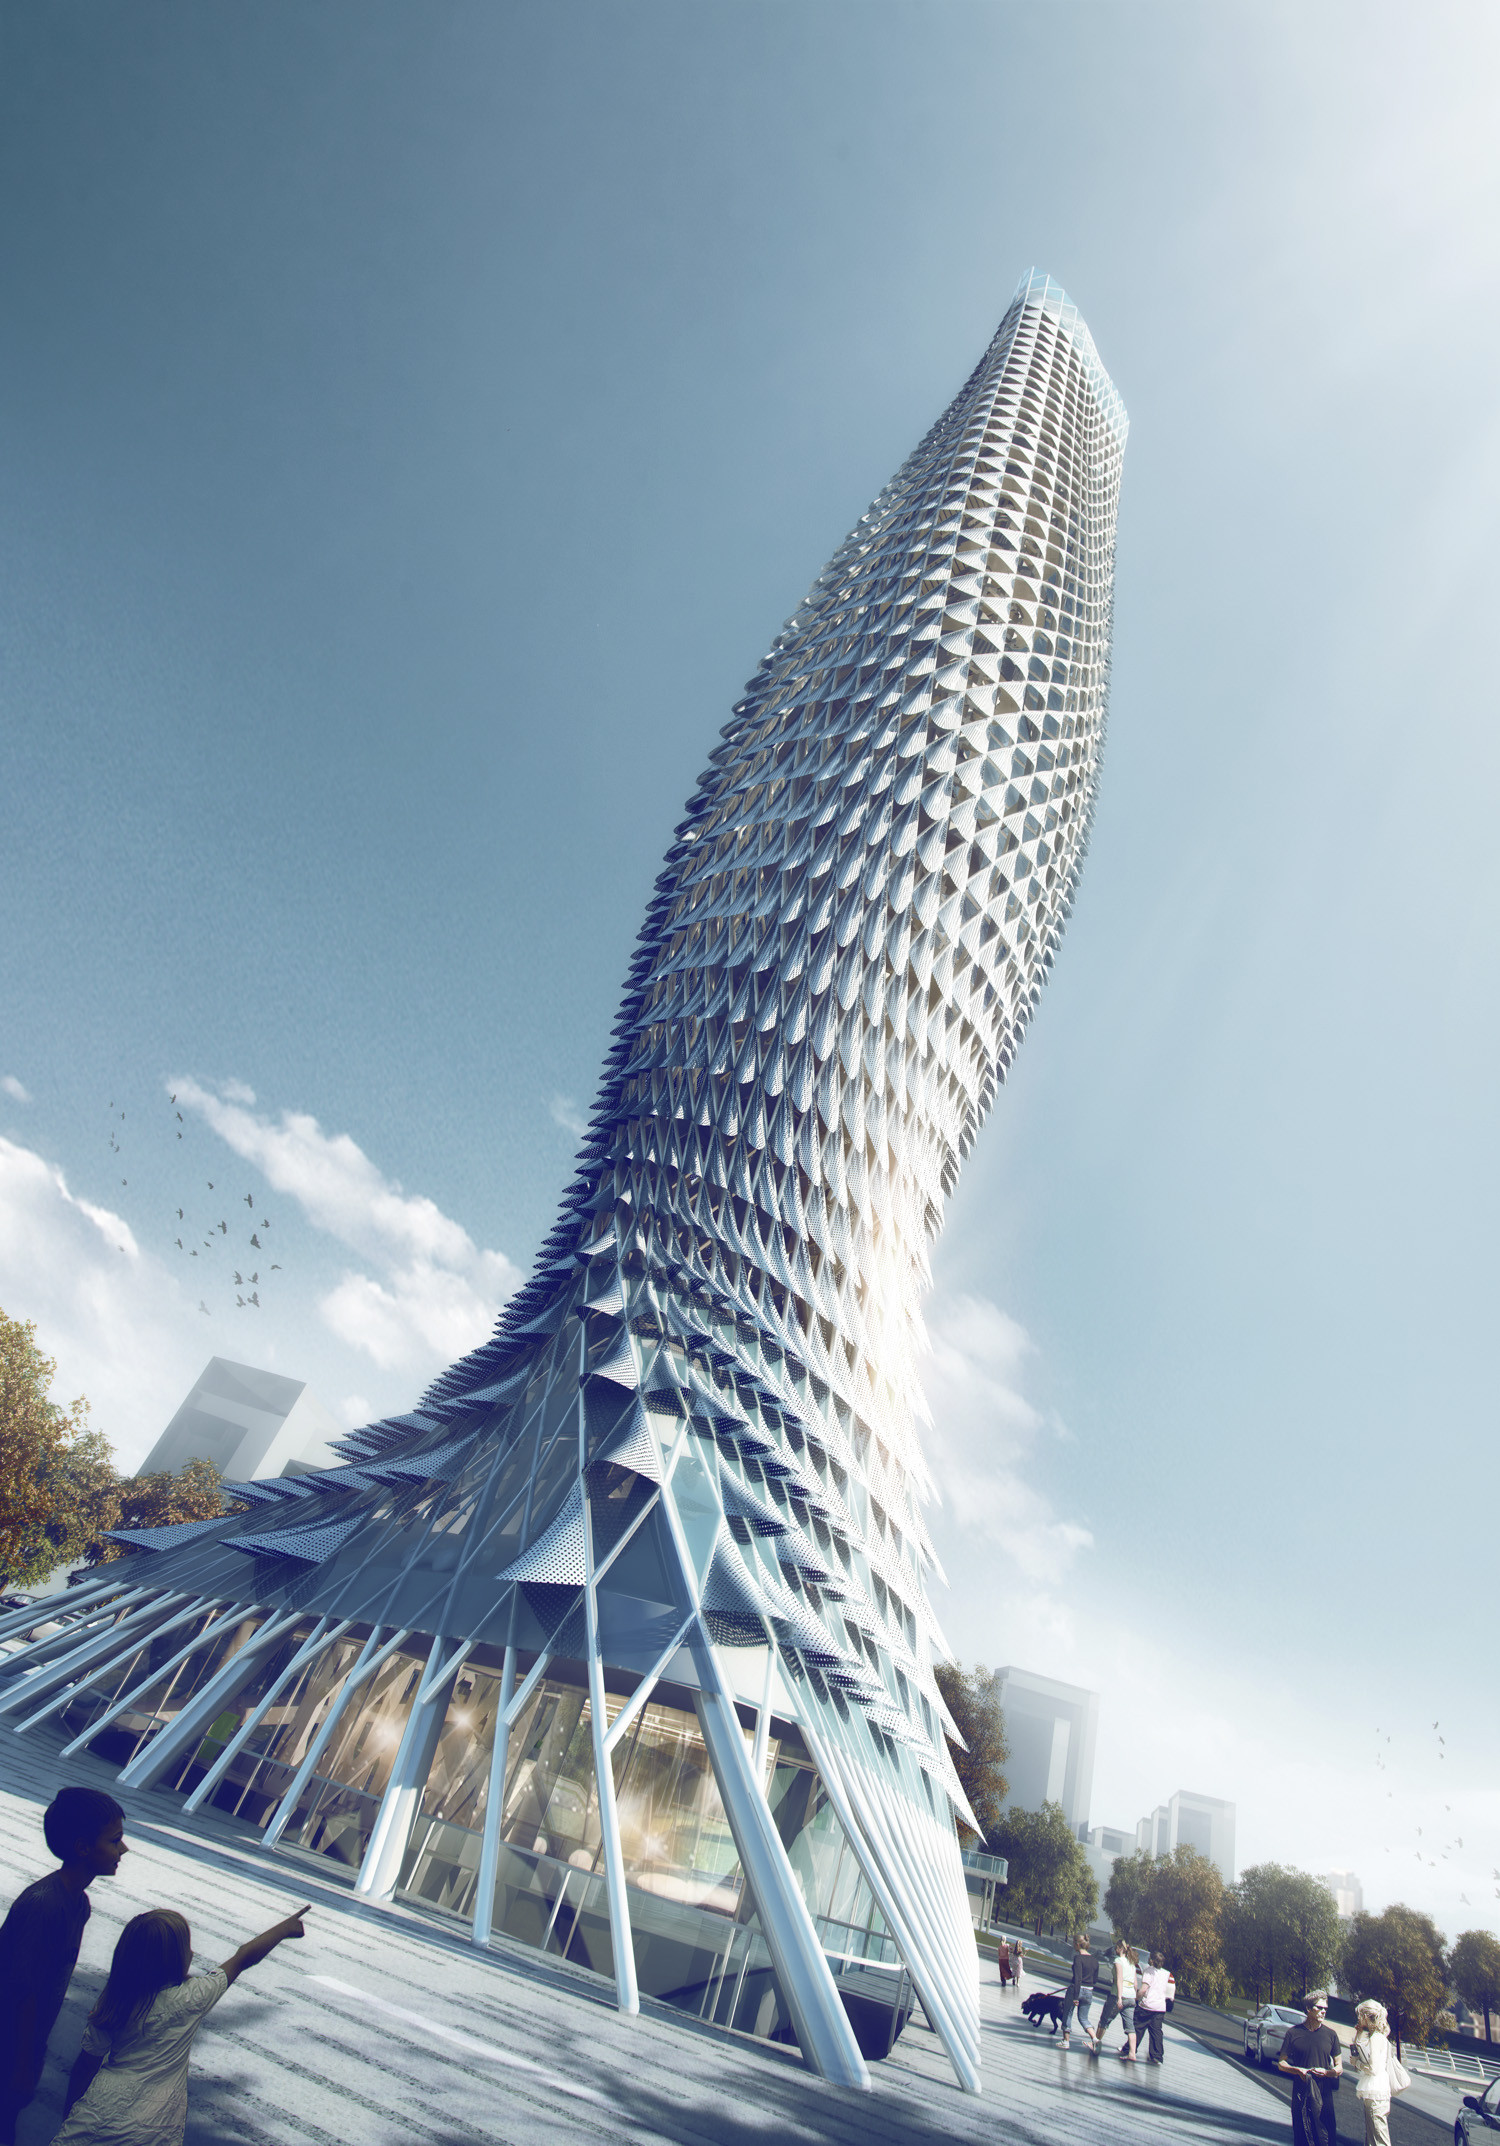 8 Conceptual Biomimicry projects that did not see the light of day - Sheet16